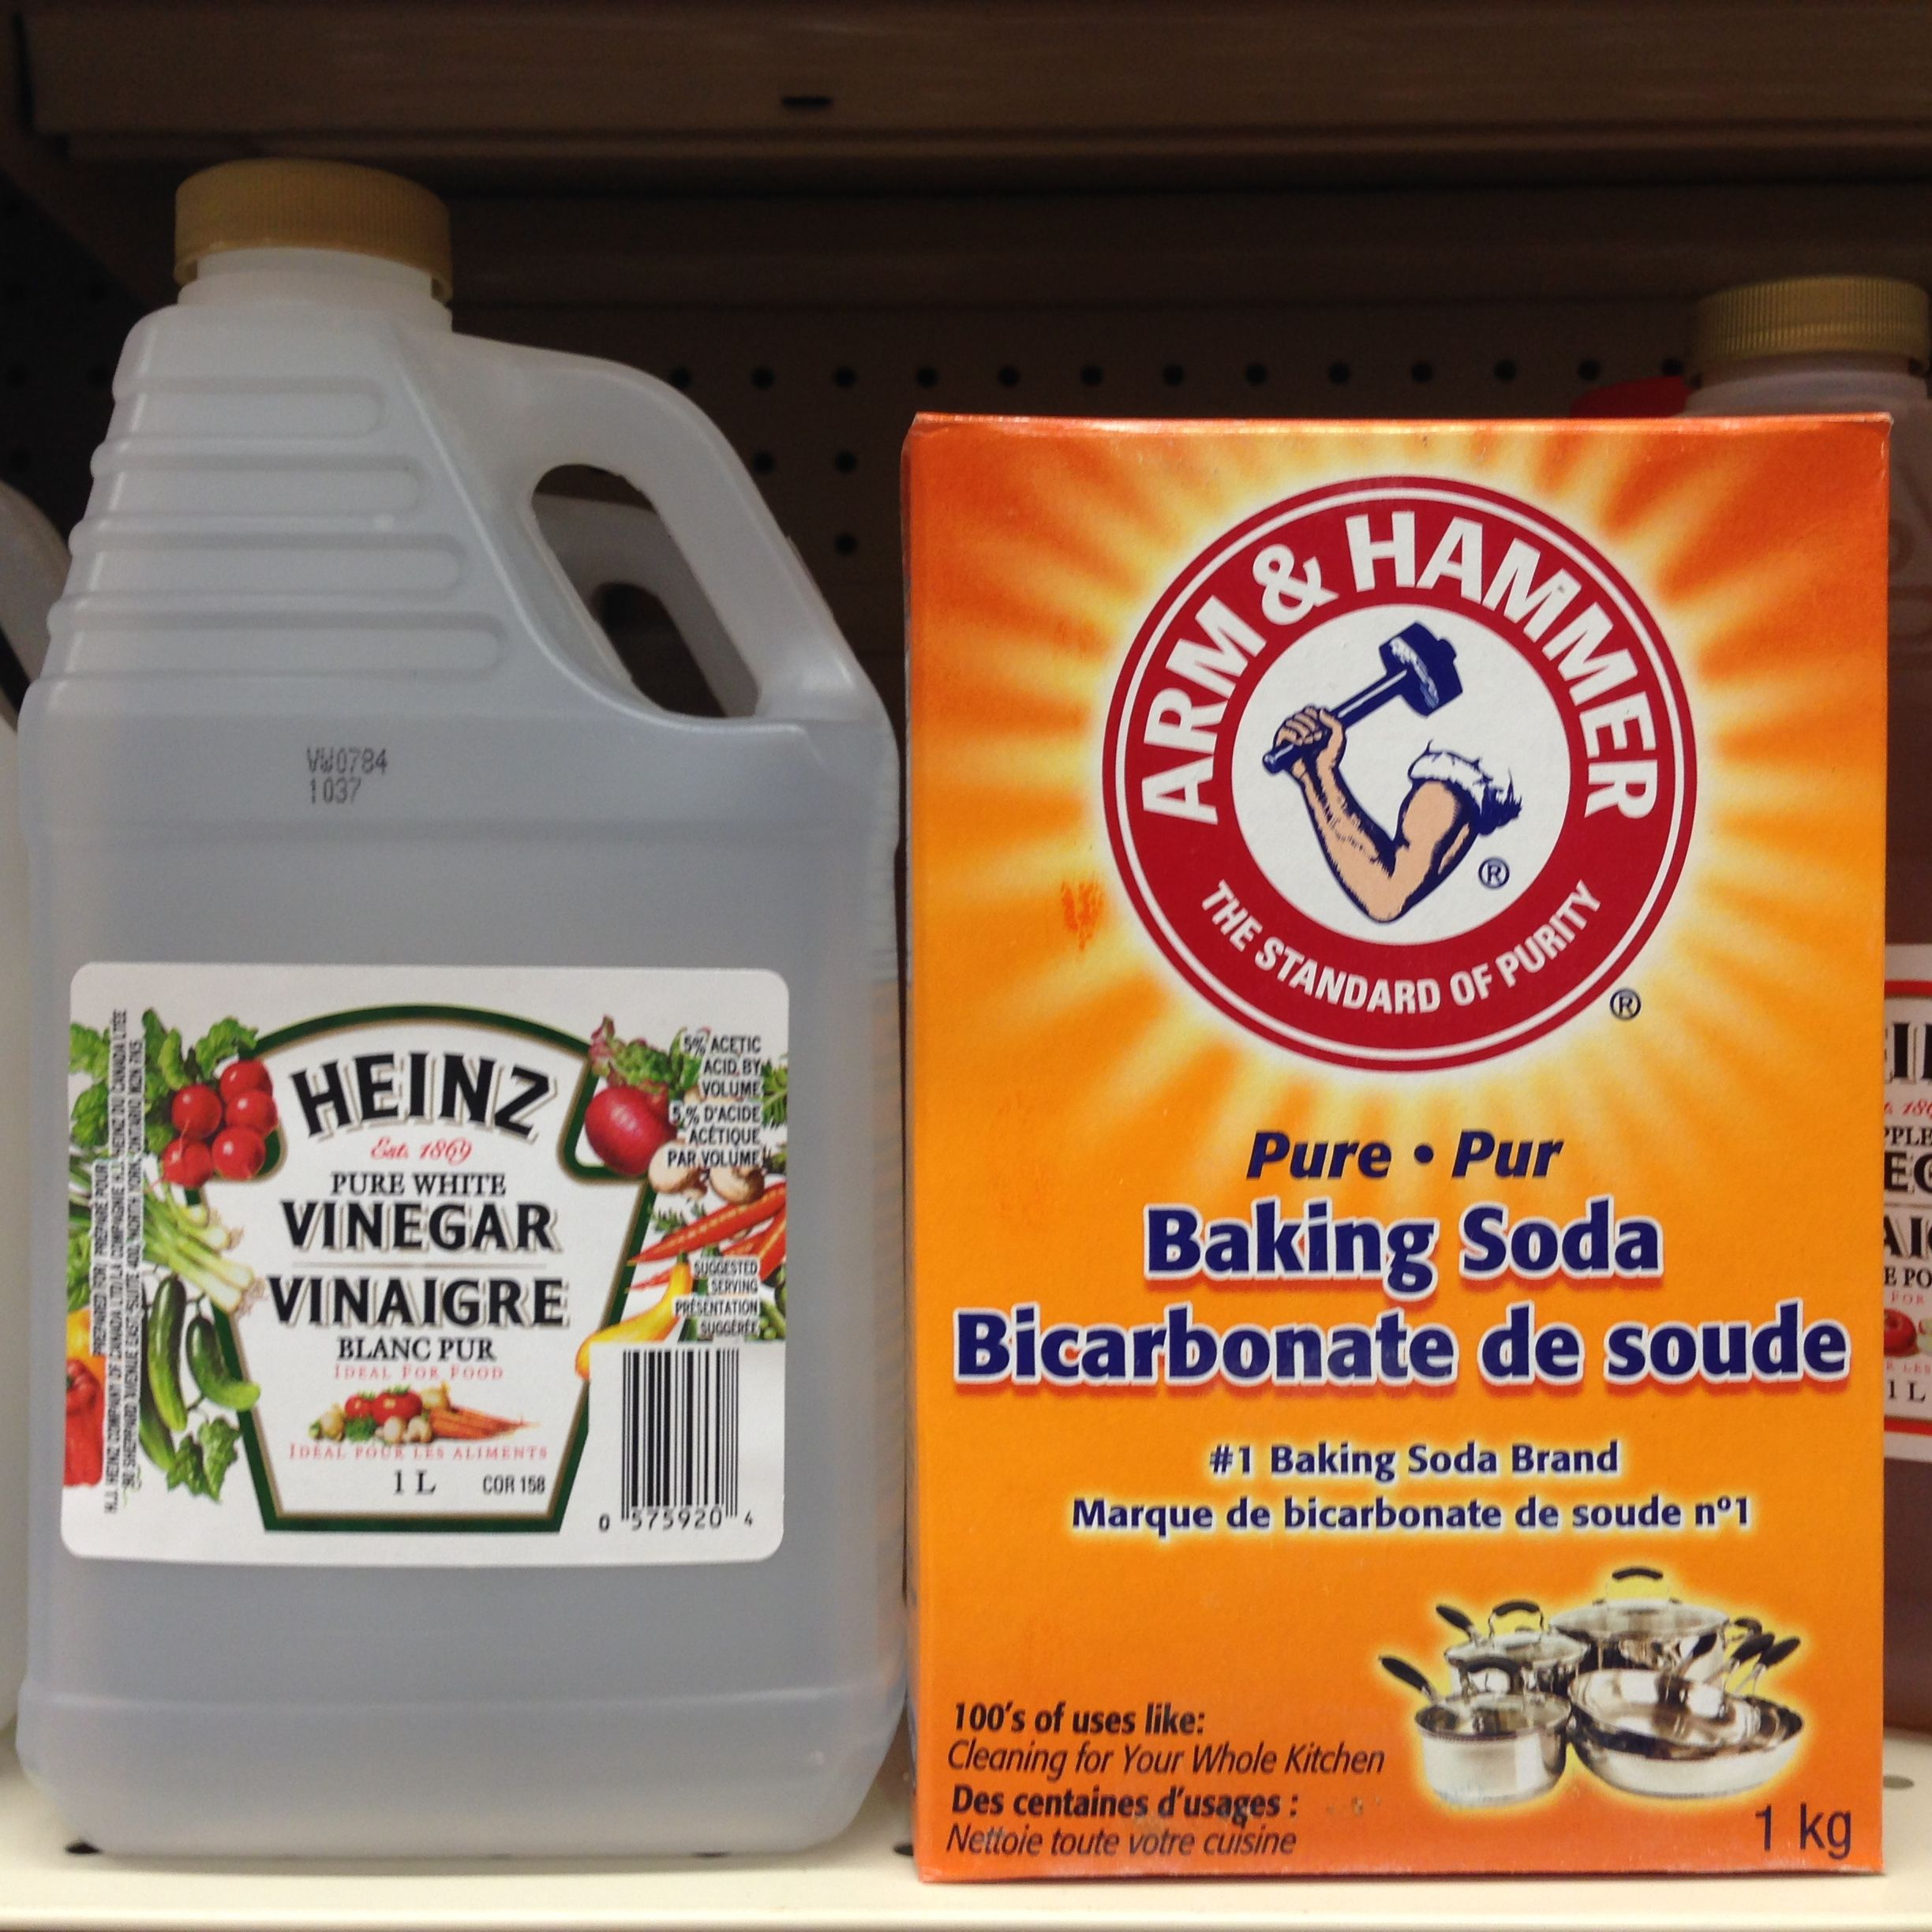 Baking soda and vinegar have many uses. A drain cleaner